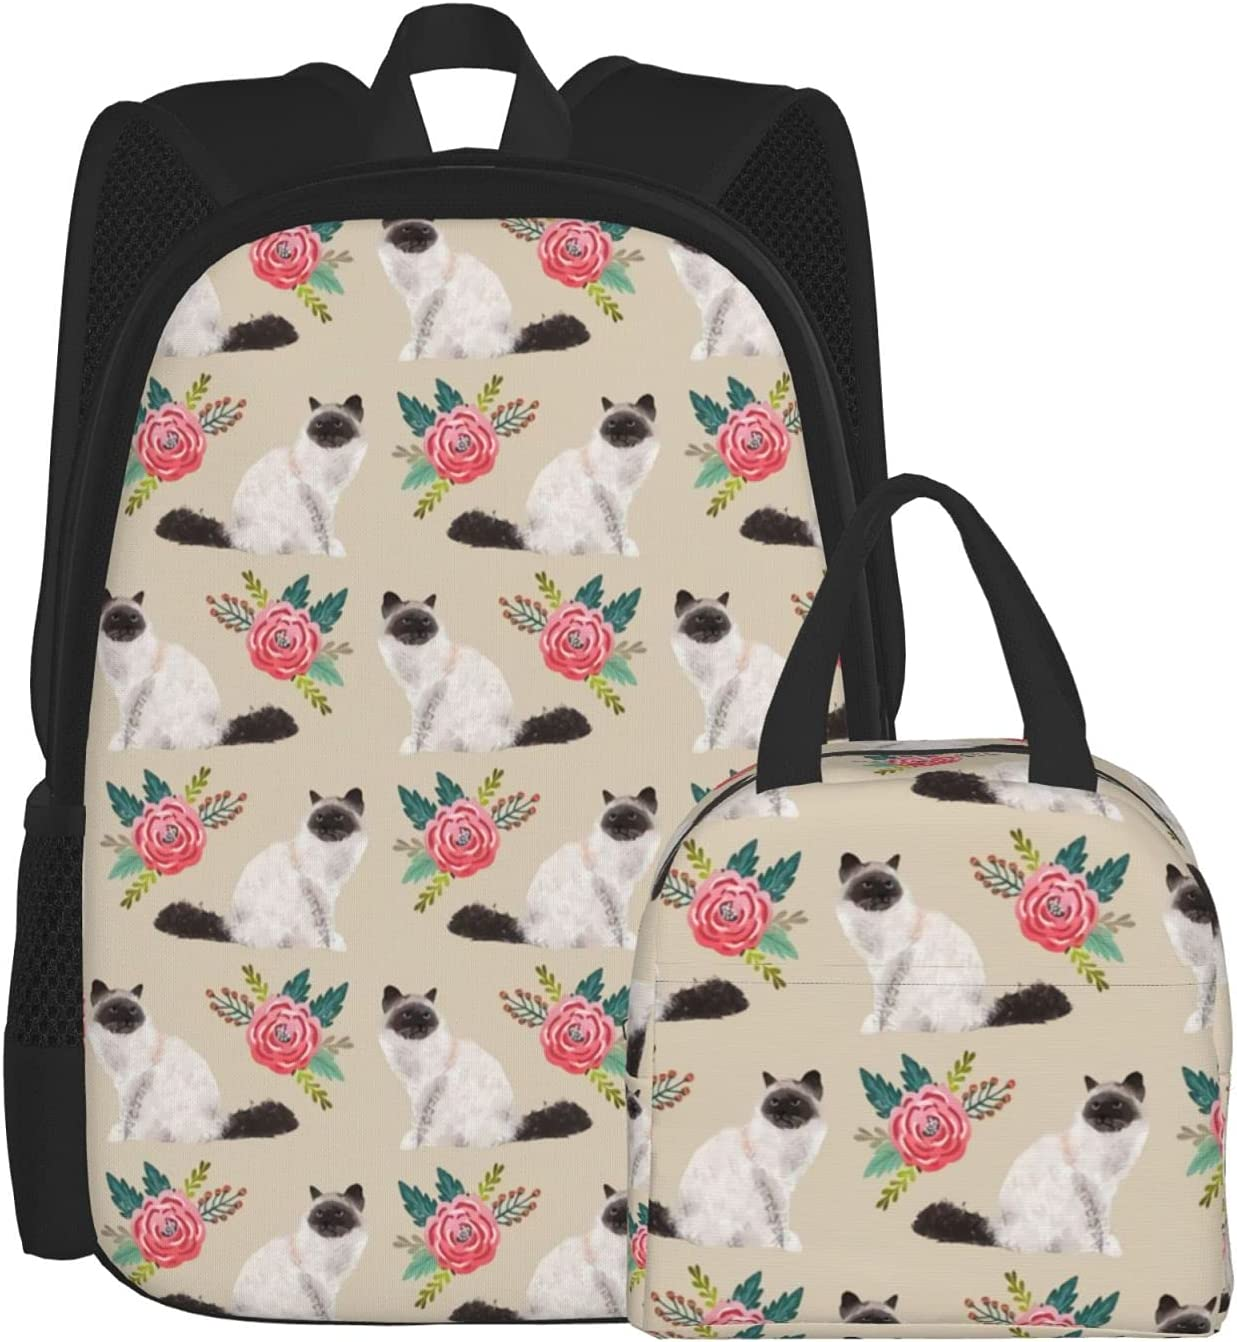 Backpacks OFFicial mail order for Girls Outlet sale feature Boys Birman Cat and Lunch Rose Bag Ba Unisex